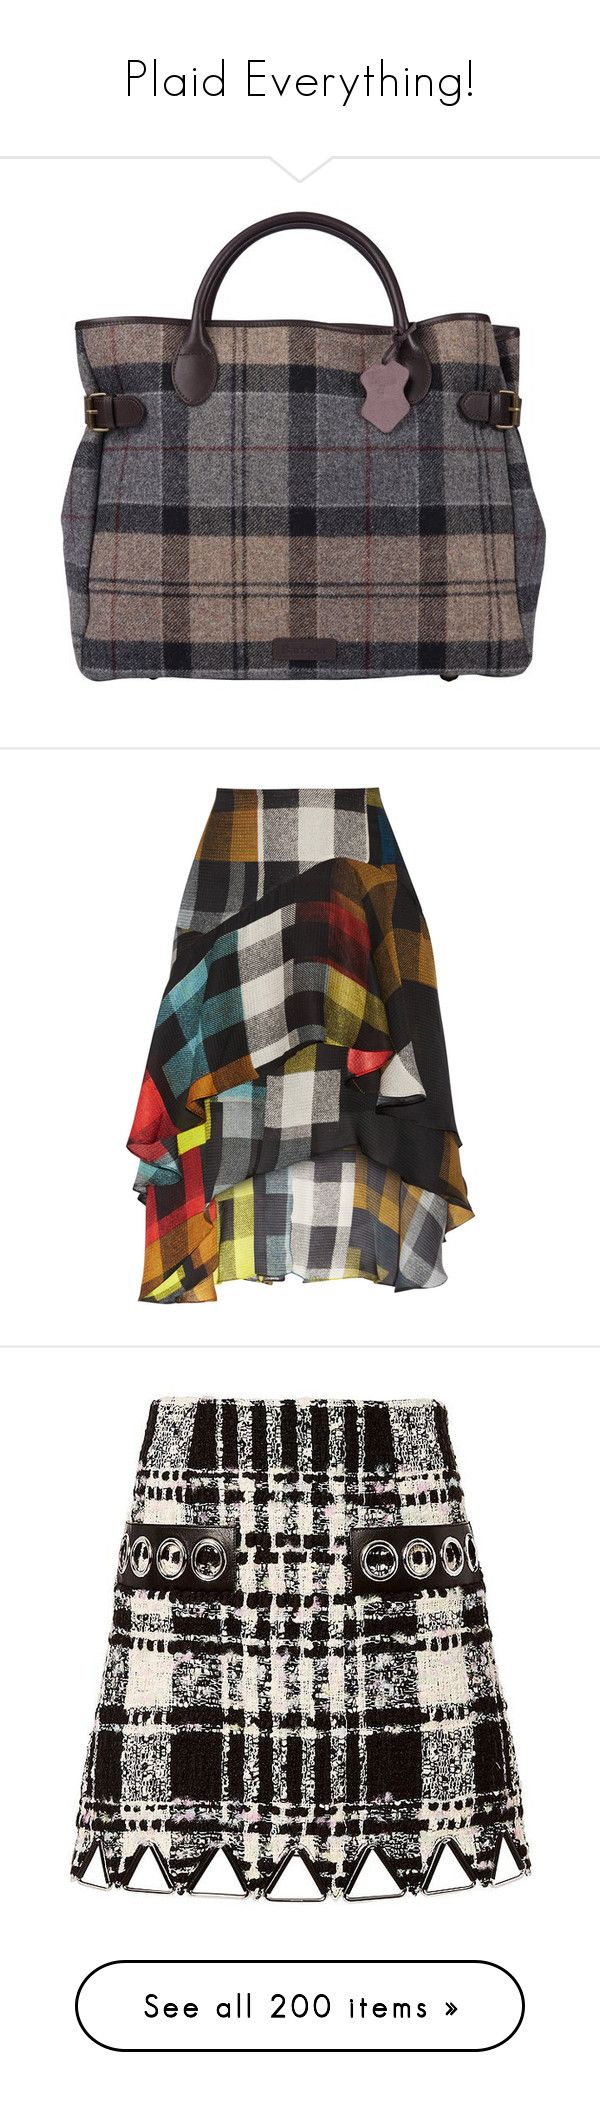 """""""Plaid Everything!"""" by jennross76 ❤ liked on Polyvore featuring bags, handbags, plaid bag, barbour bags, real leather bags, business bag, plaid purse, skirts, bottoms and multi"""